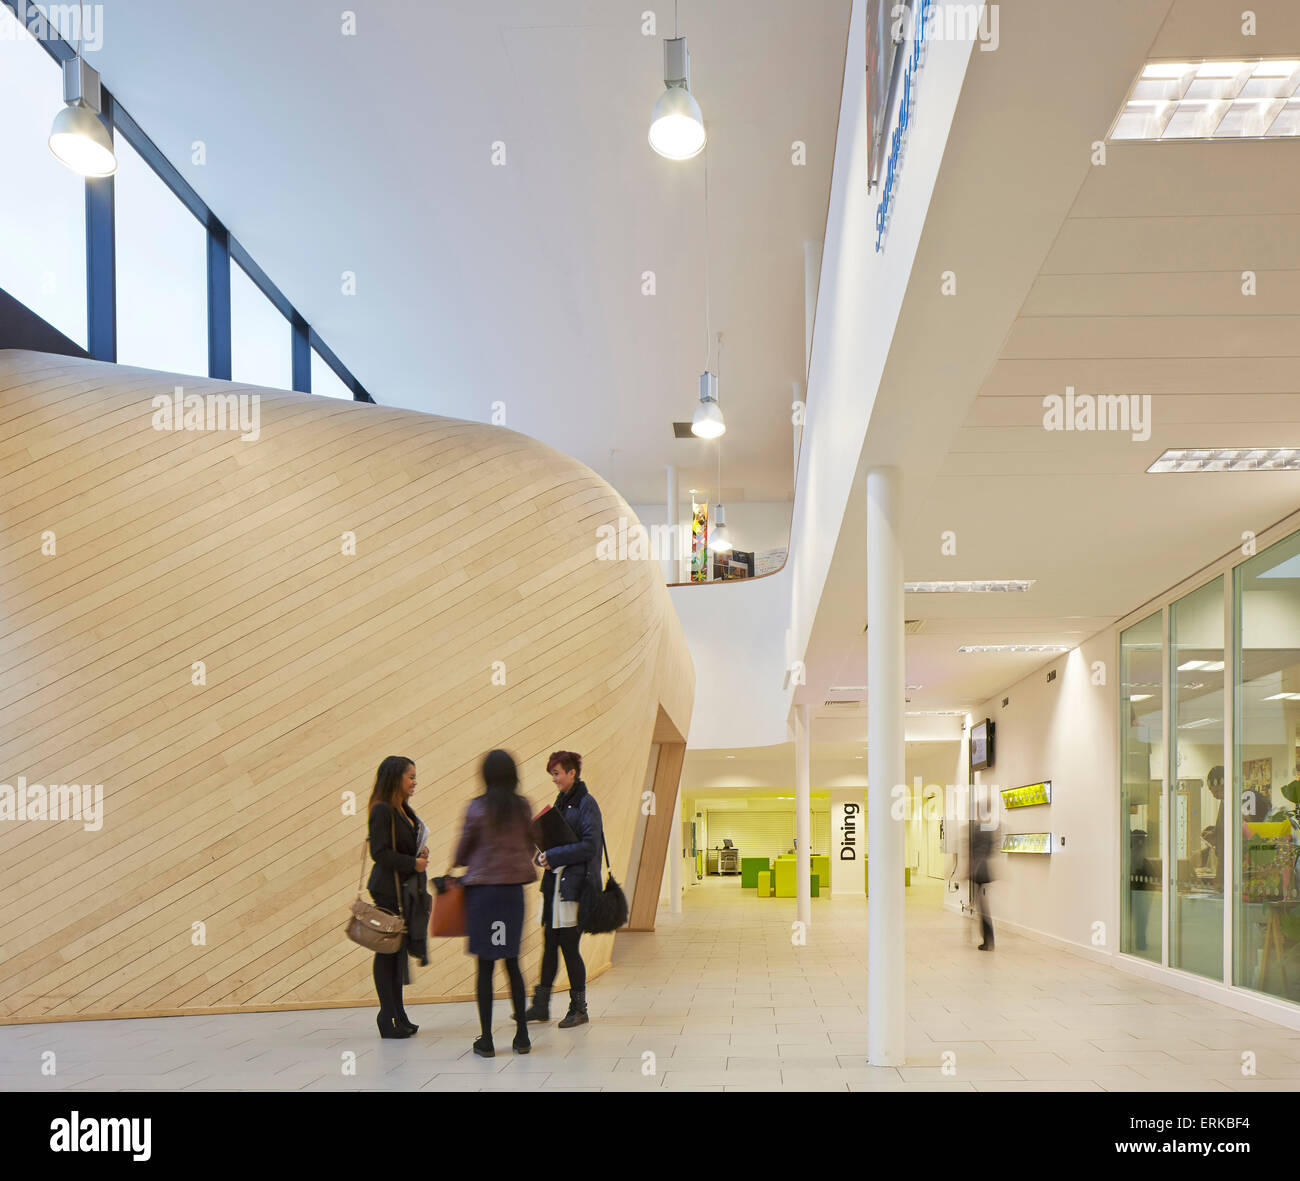 Entrance And Foyer With Timber Clad Performance Hall The Kings Church Of England School Wolverhampton United Kingdom Archit